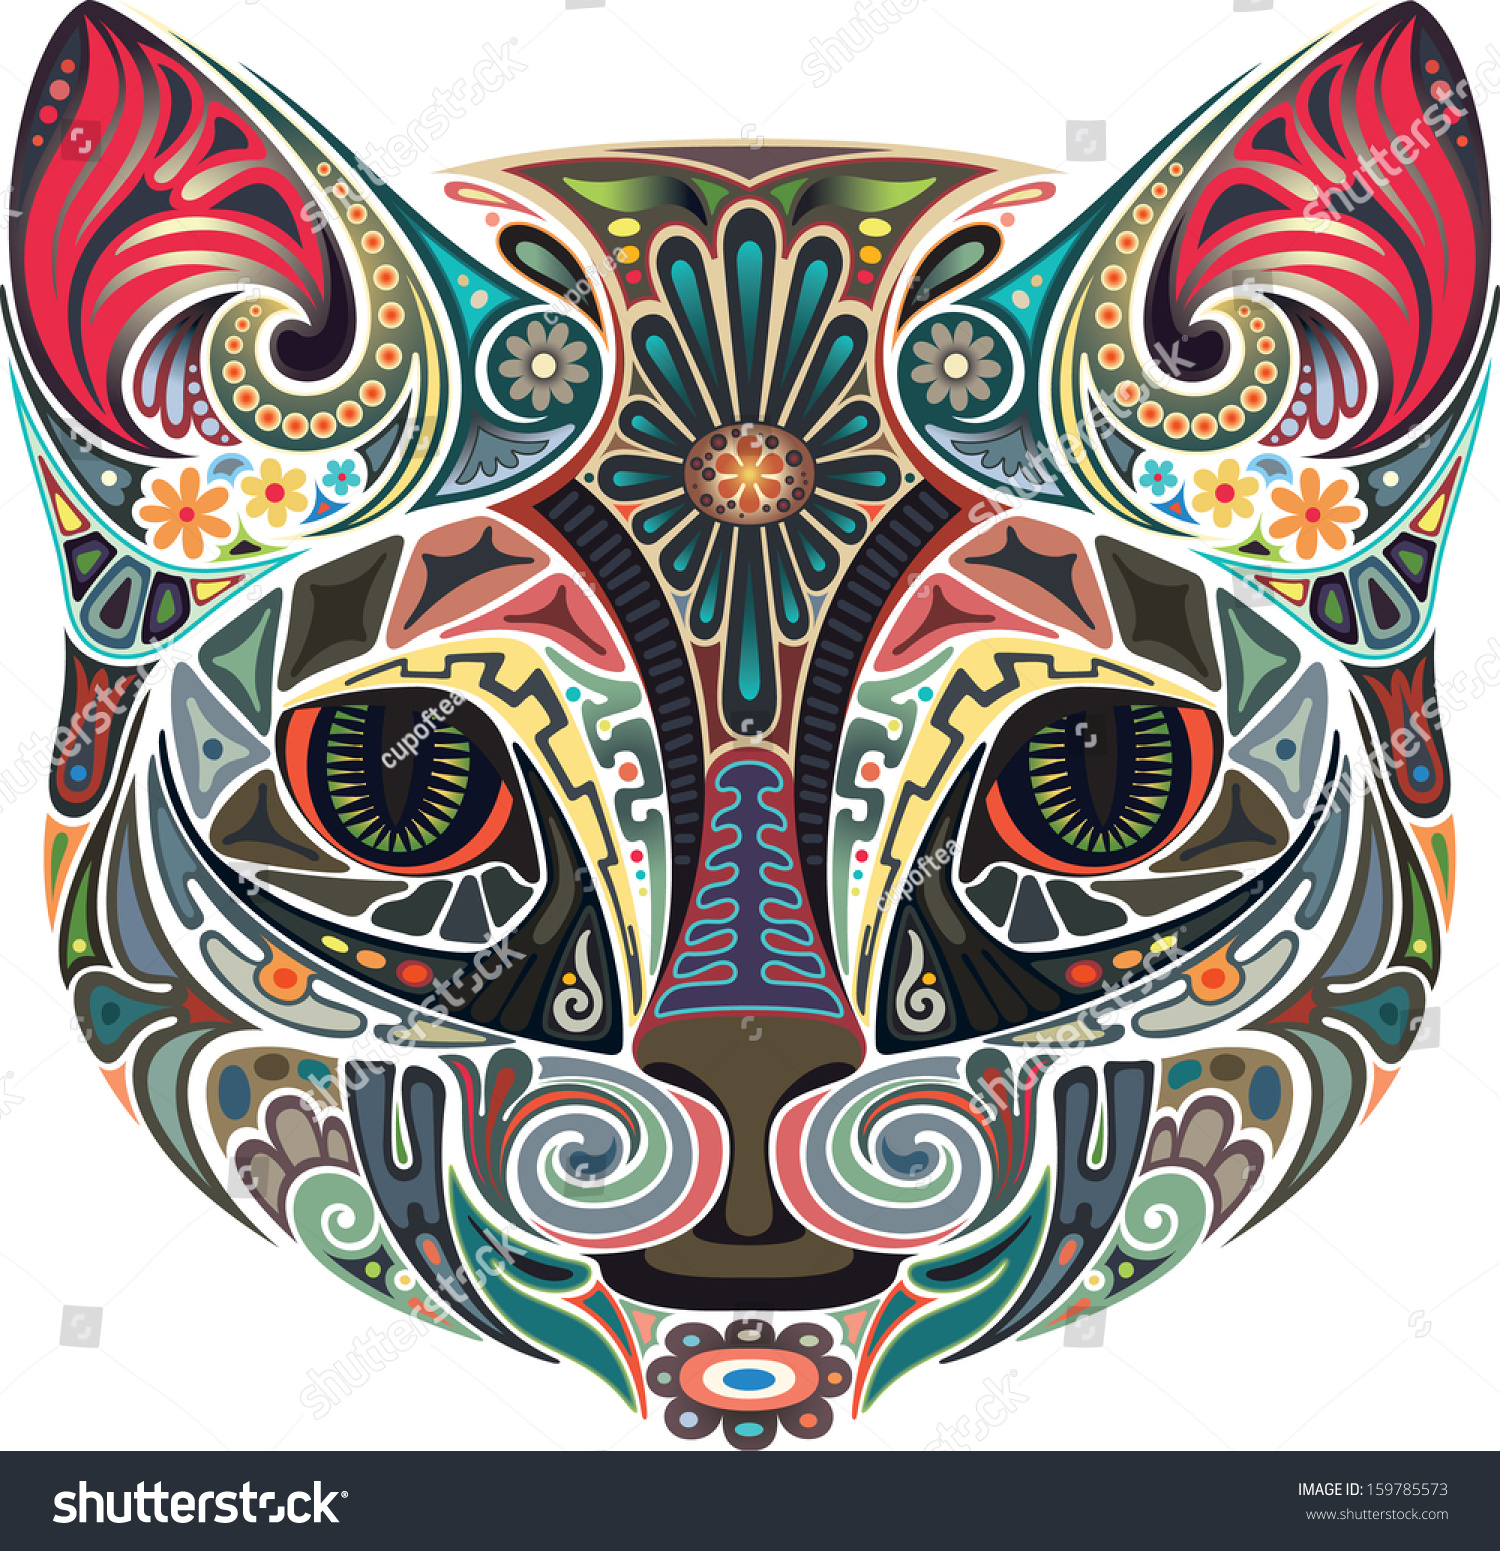 http://image.shutterstock.com/z/stock-vector-cat-with-pink-ears-159785573.jpg